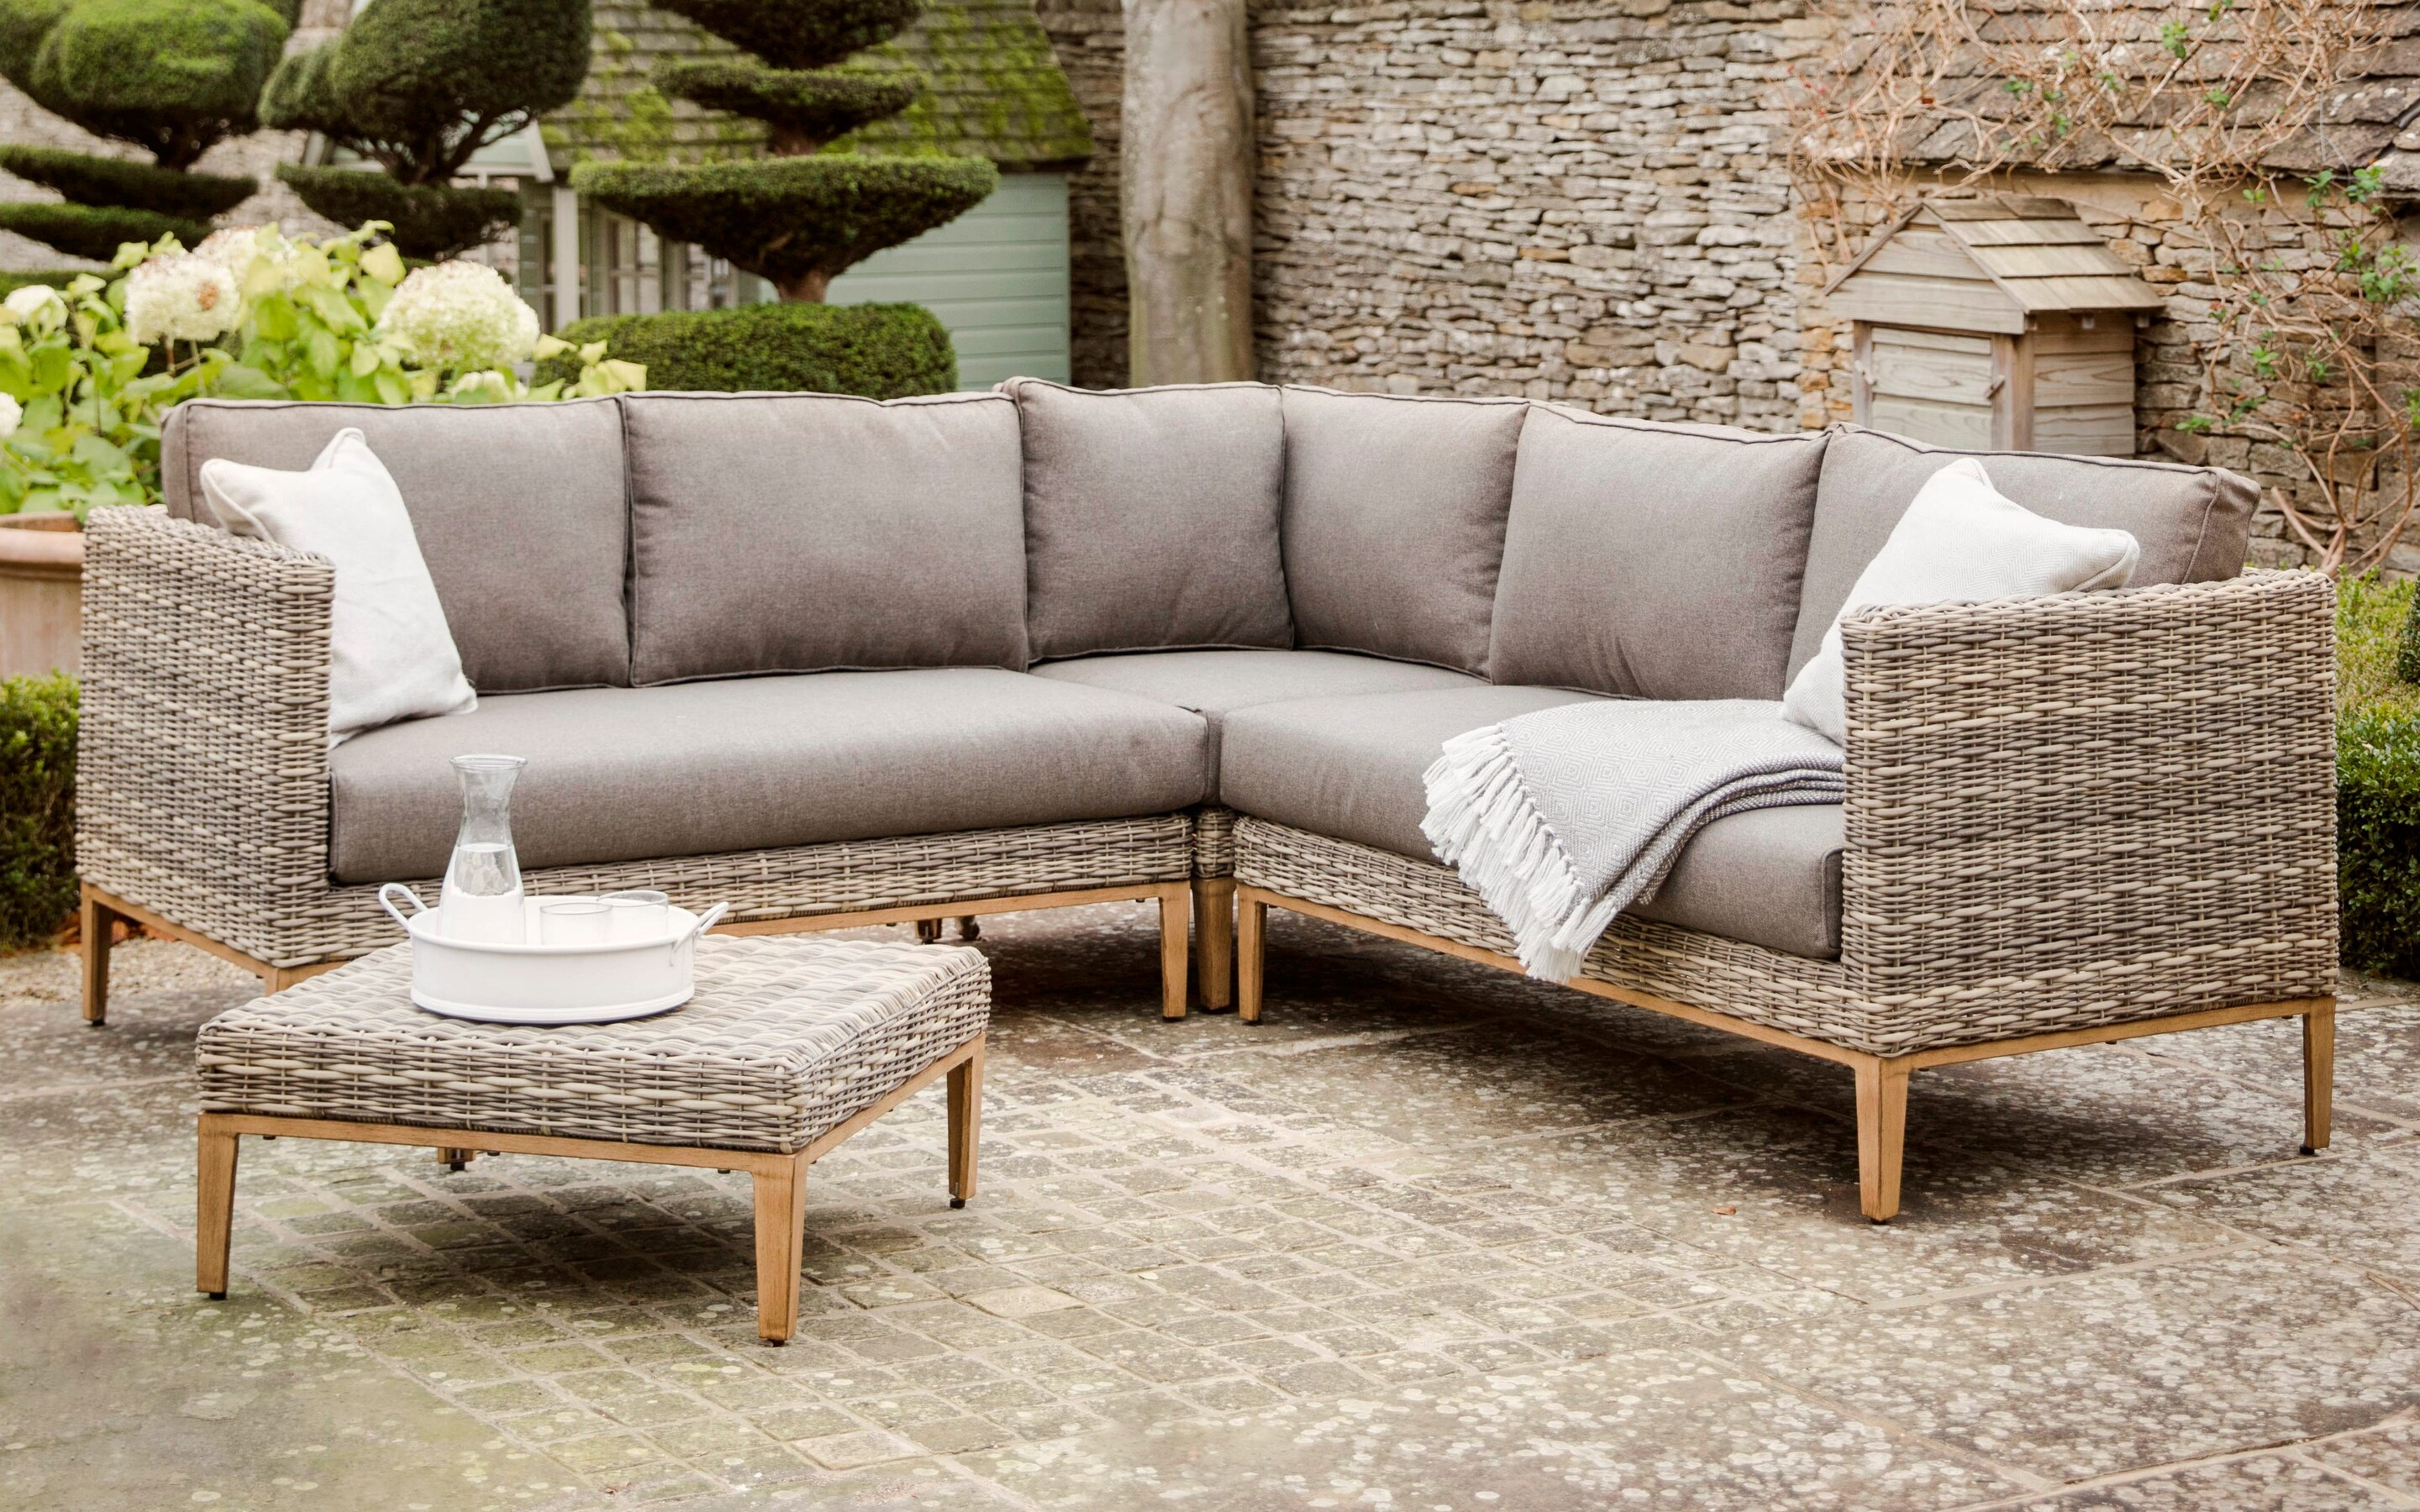 Rattan Sofa Near Me Best Rattan Garden Furniture And Where To Buy It The Telegraph